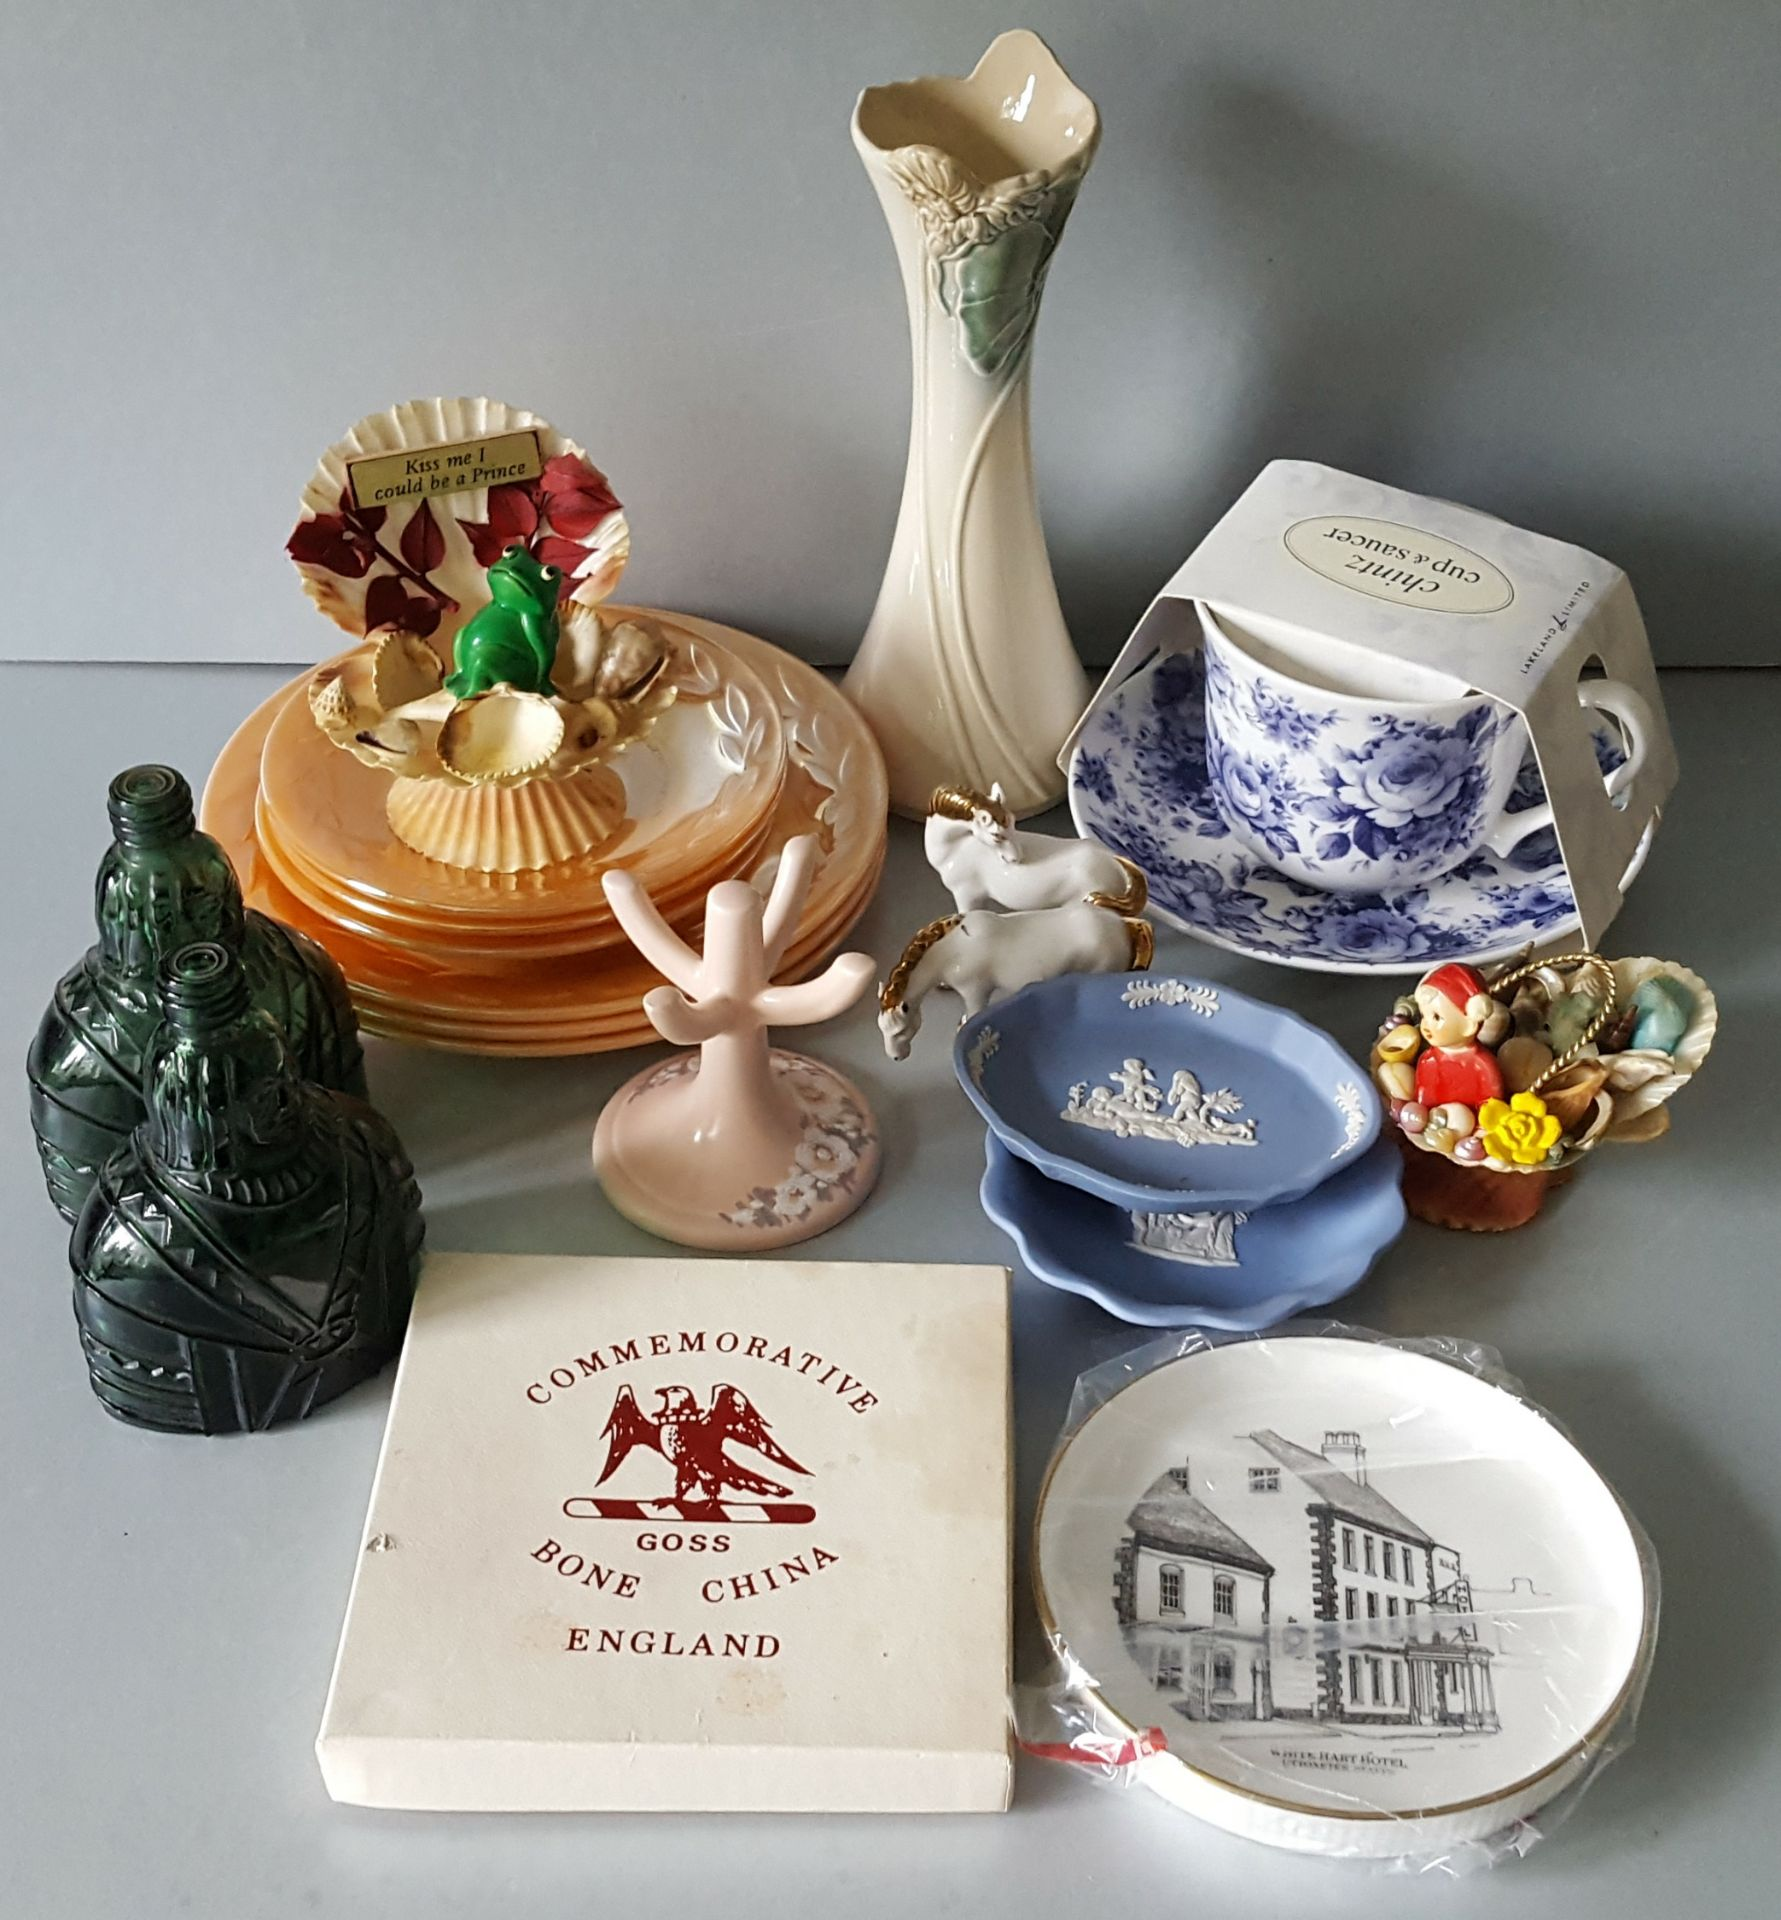 Lot 39 - Vintage Retro Kitsch Parcel of Items Includes Goss & Wedgwood